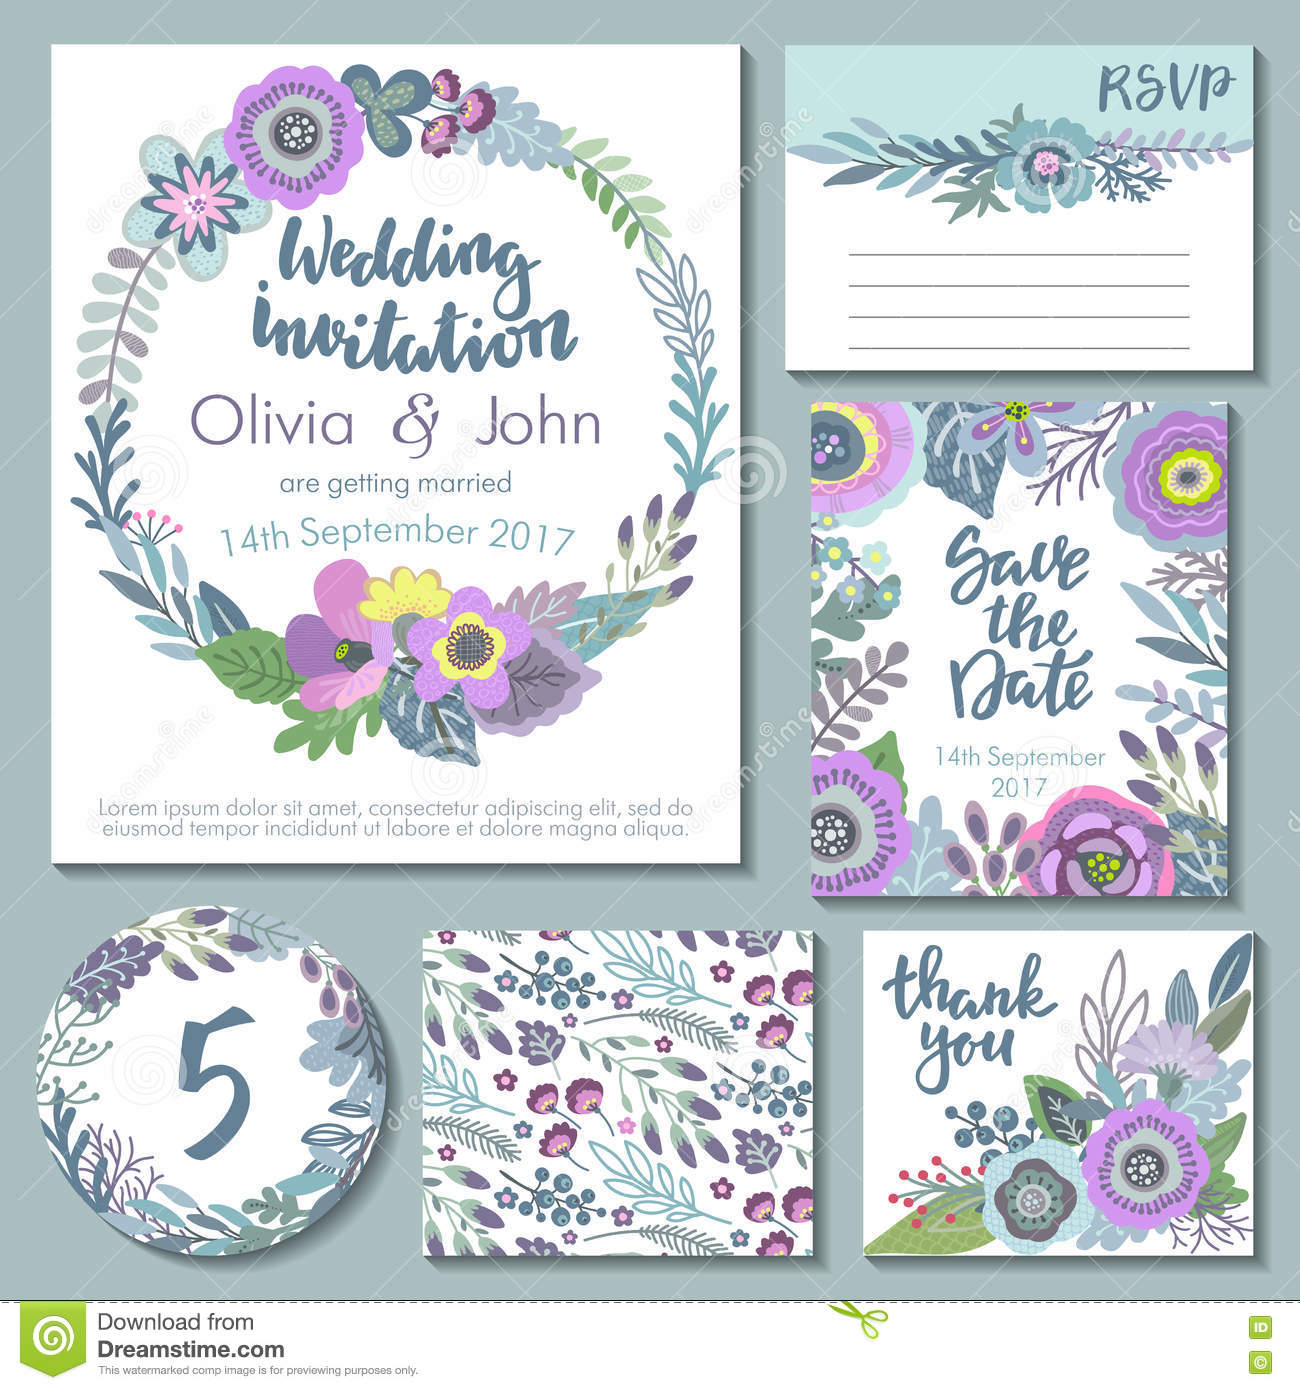 Save The Date Wedding Floral Ornament Wedding Floral: Vector Wedding Collection. Templates For Invitation, Thank